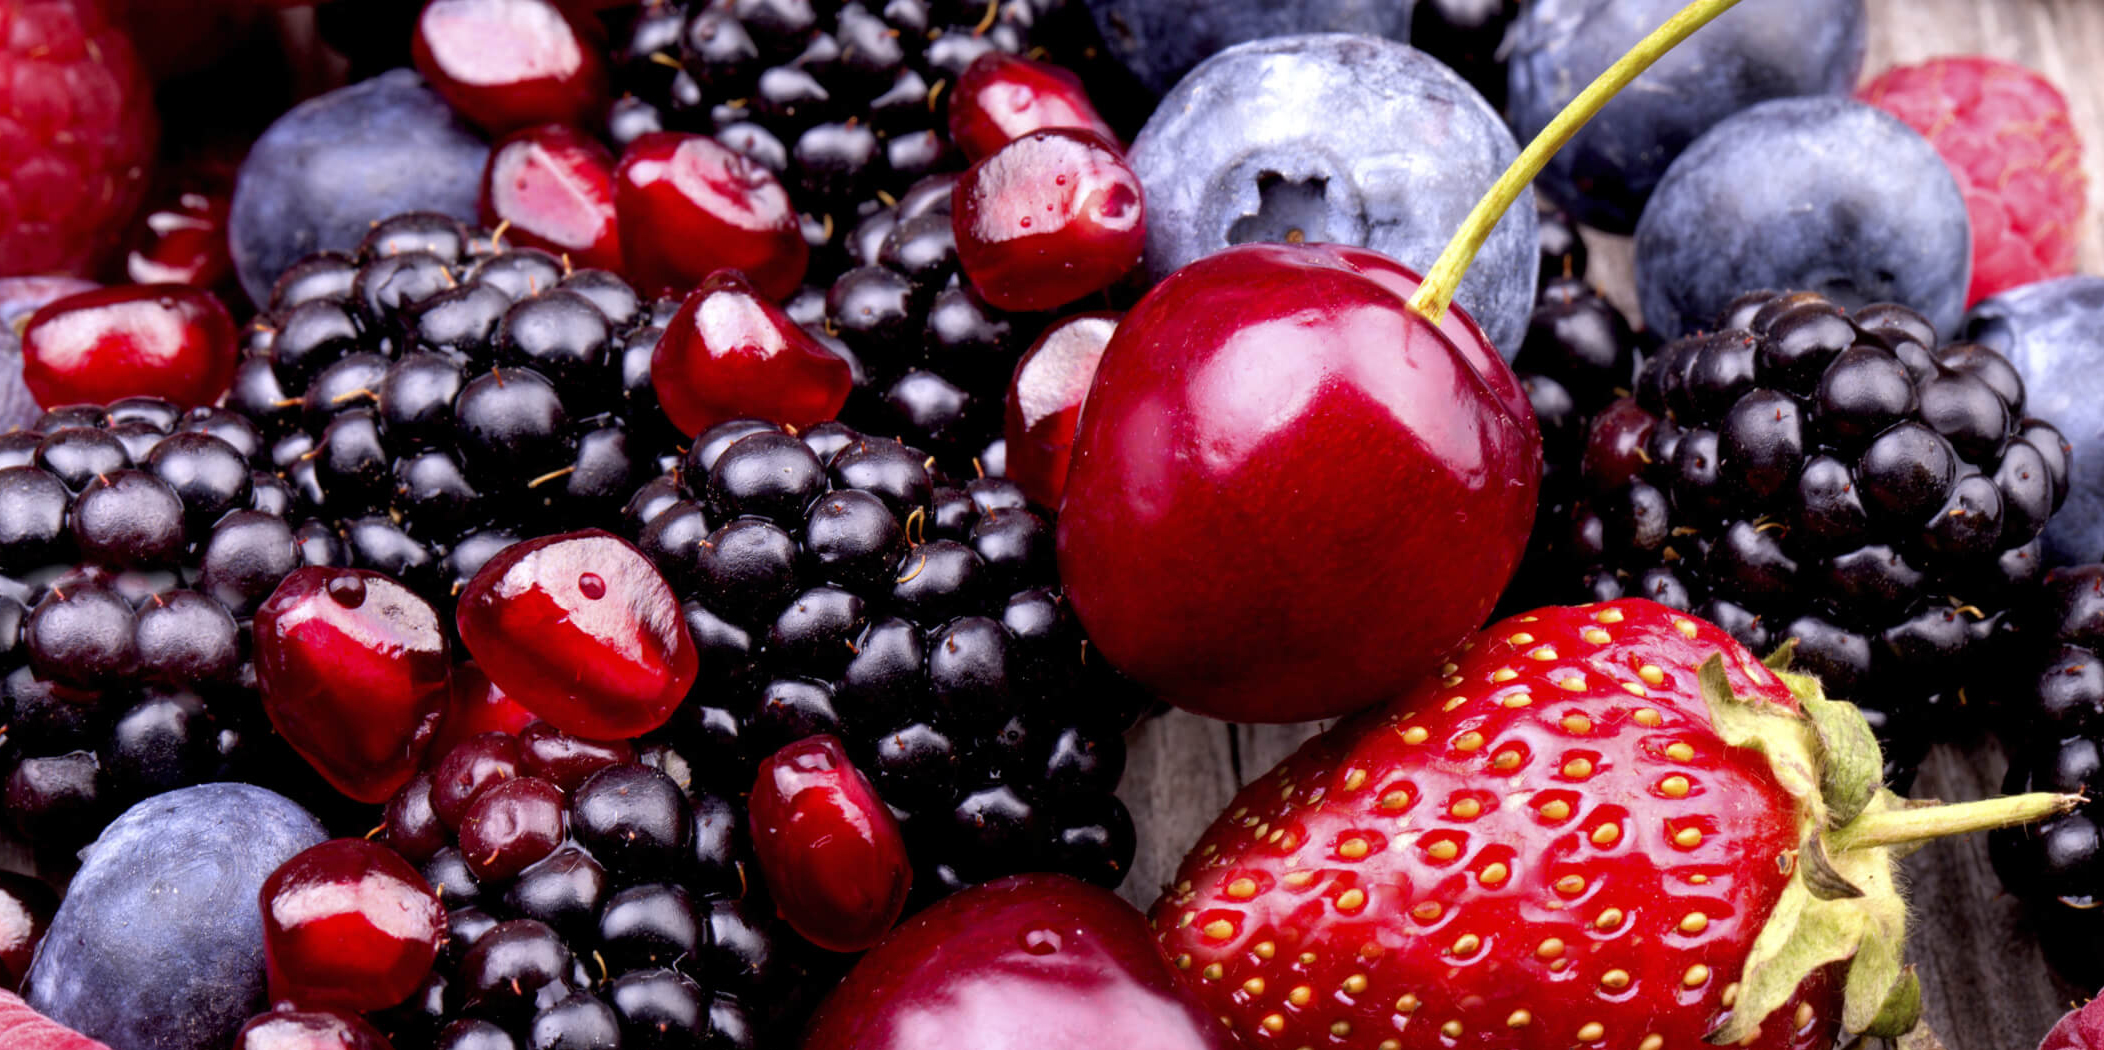 8 Foods That Are High in Polyphenols